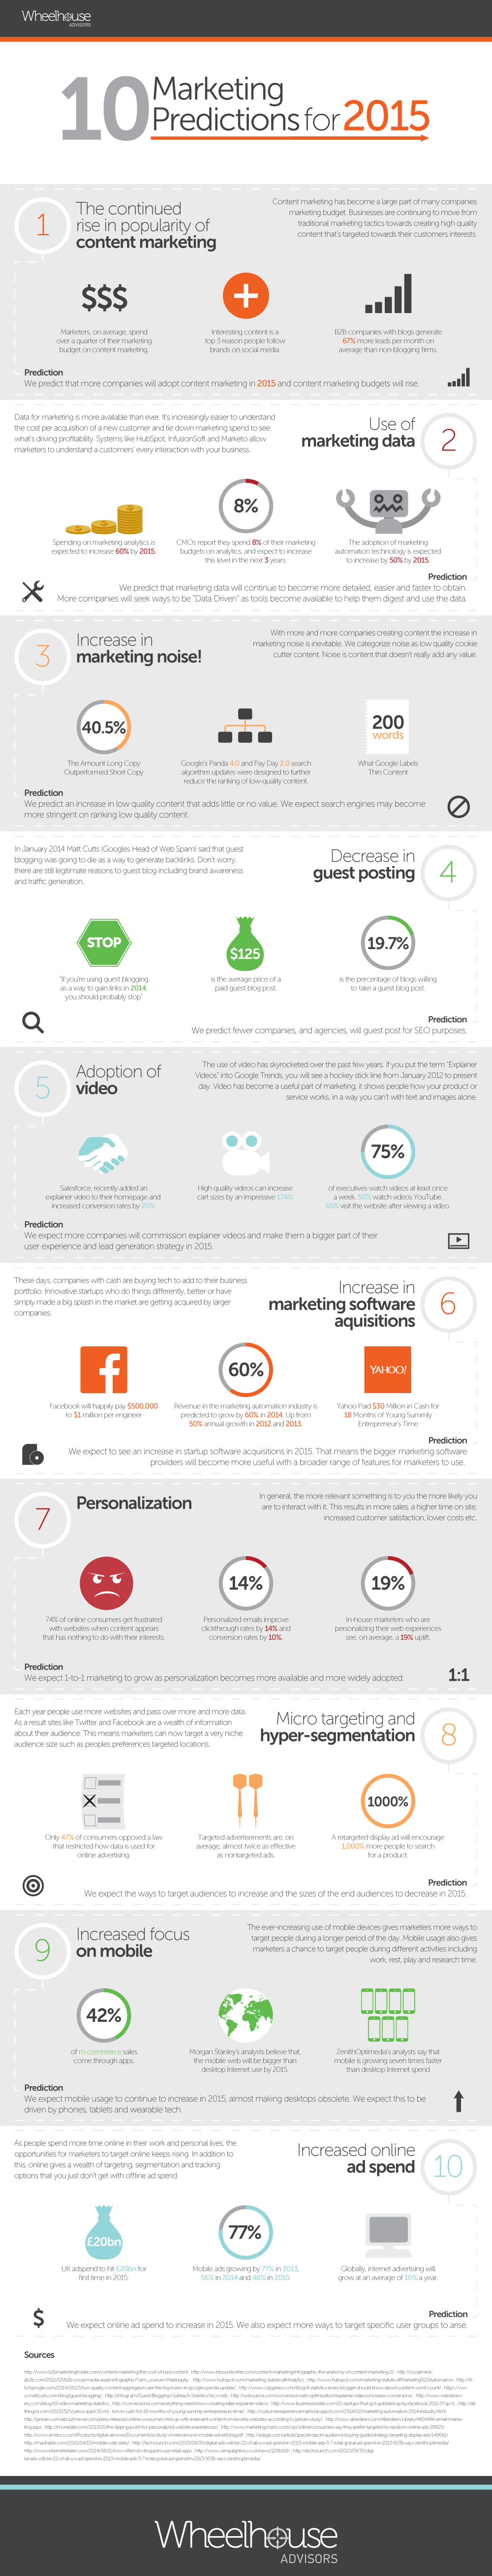 10 Marketing Trends For 2015 [INFOGRAPHIC]